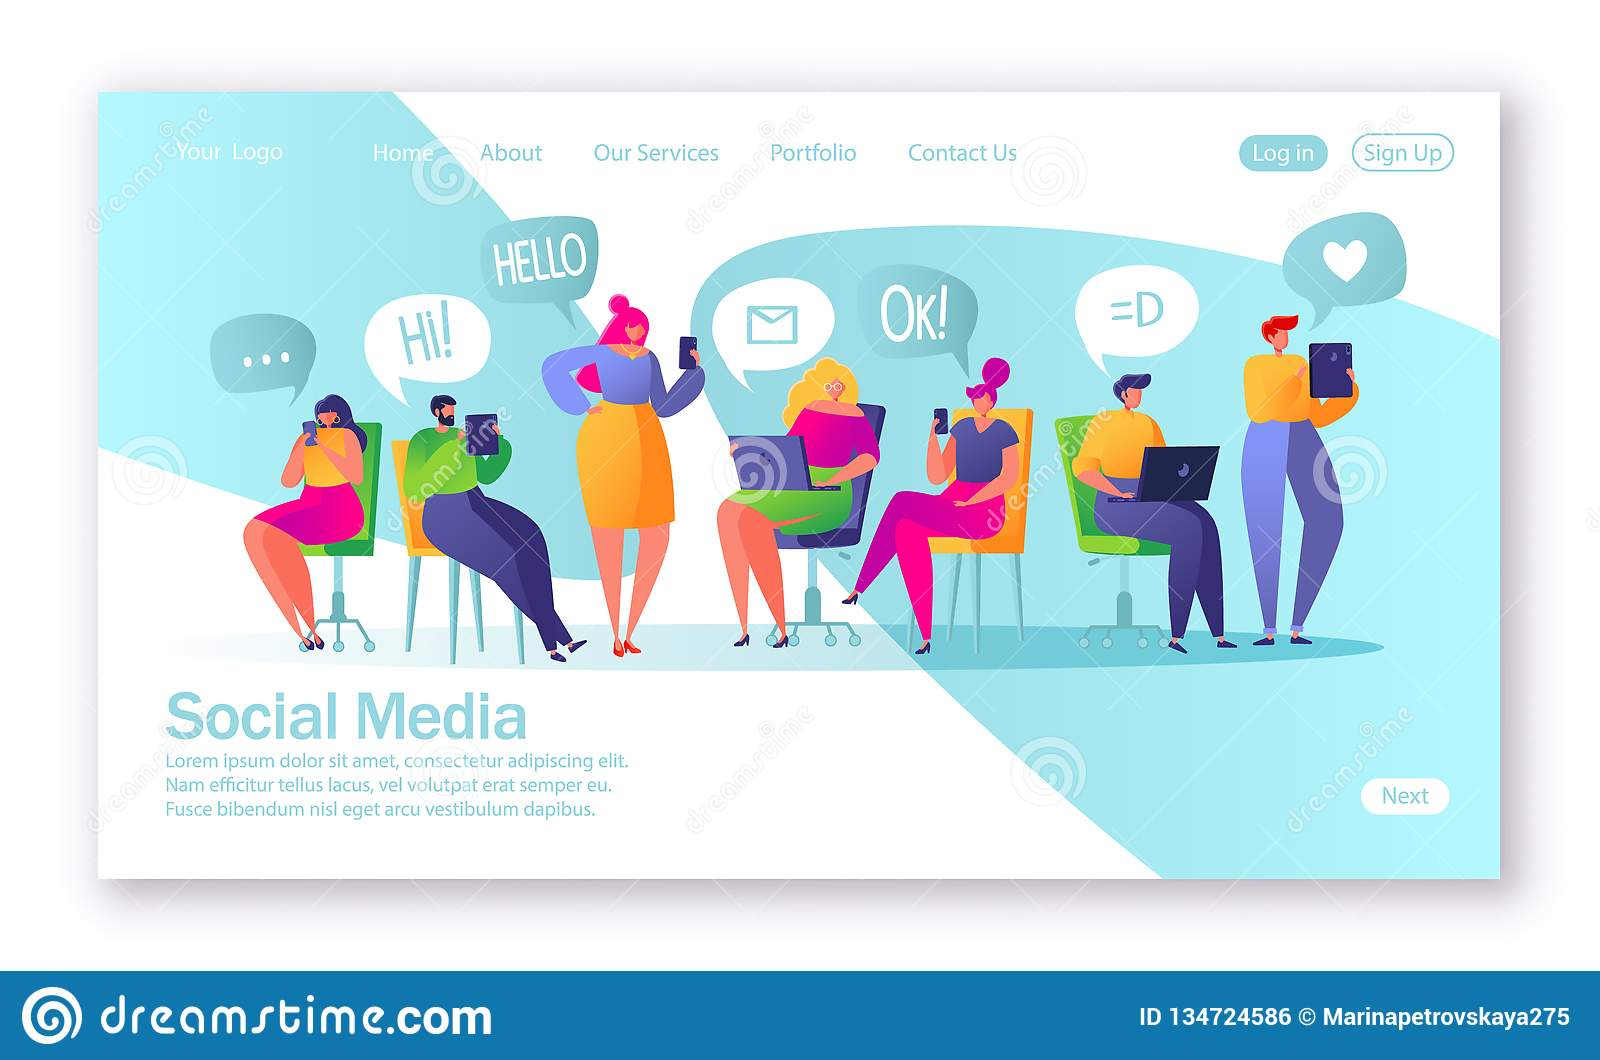 Concept of landing page on social media theme. Vector illustration for mobile website development and web page design.